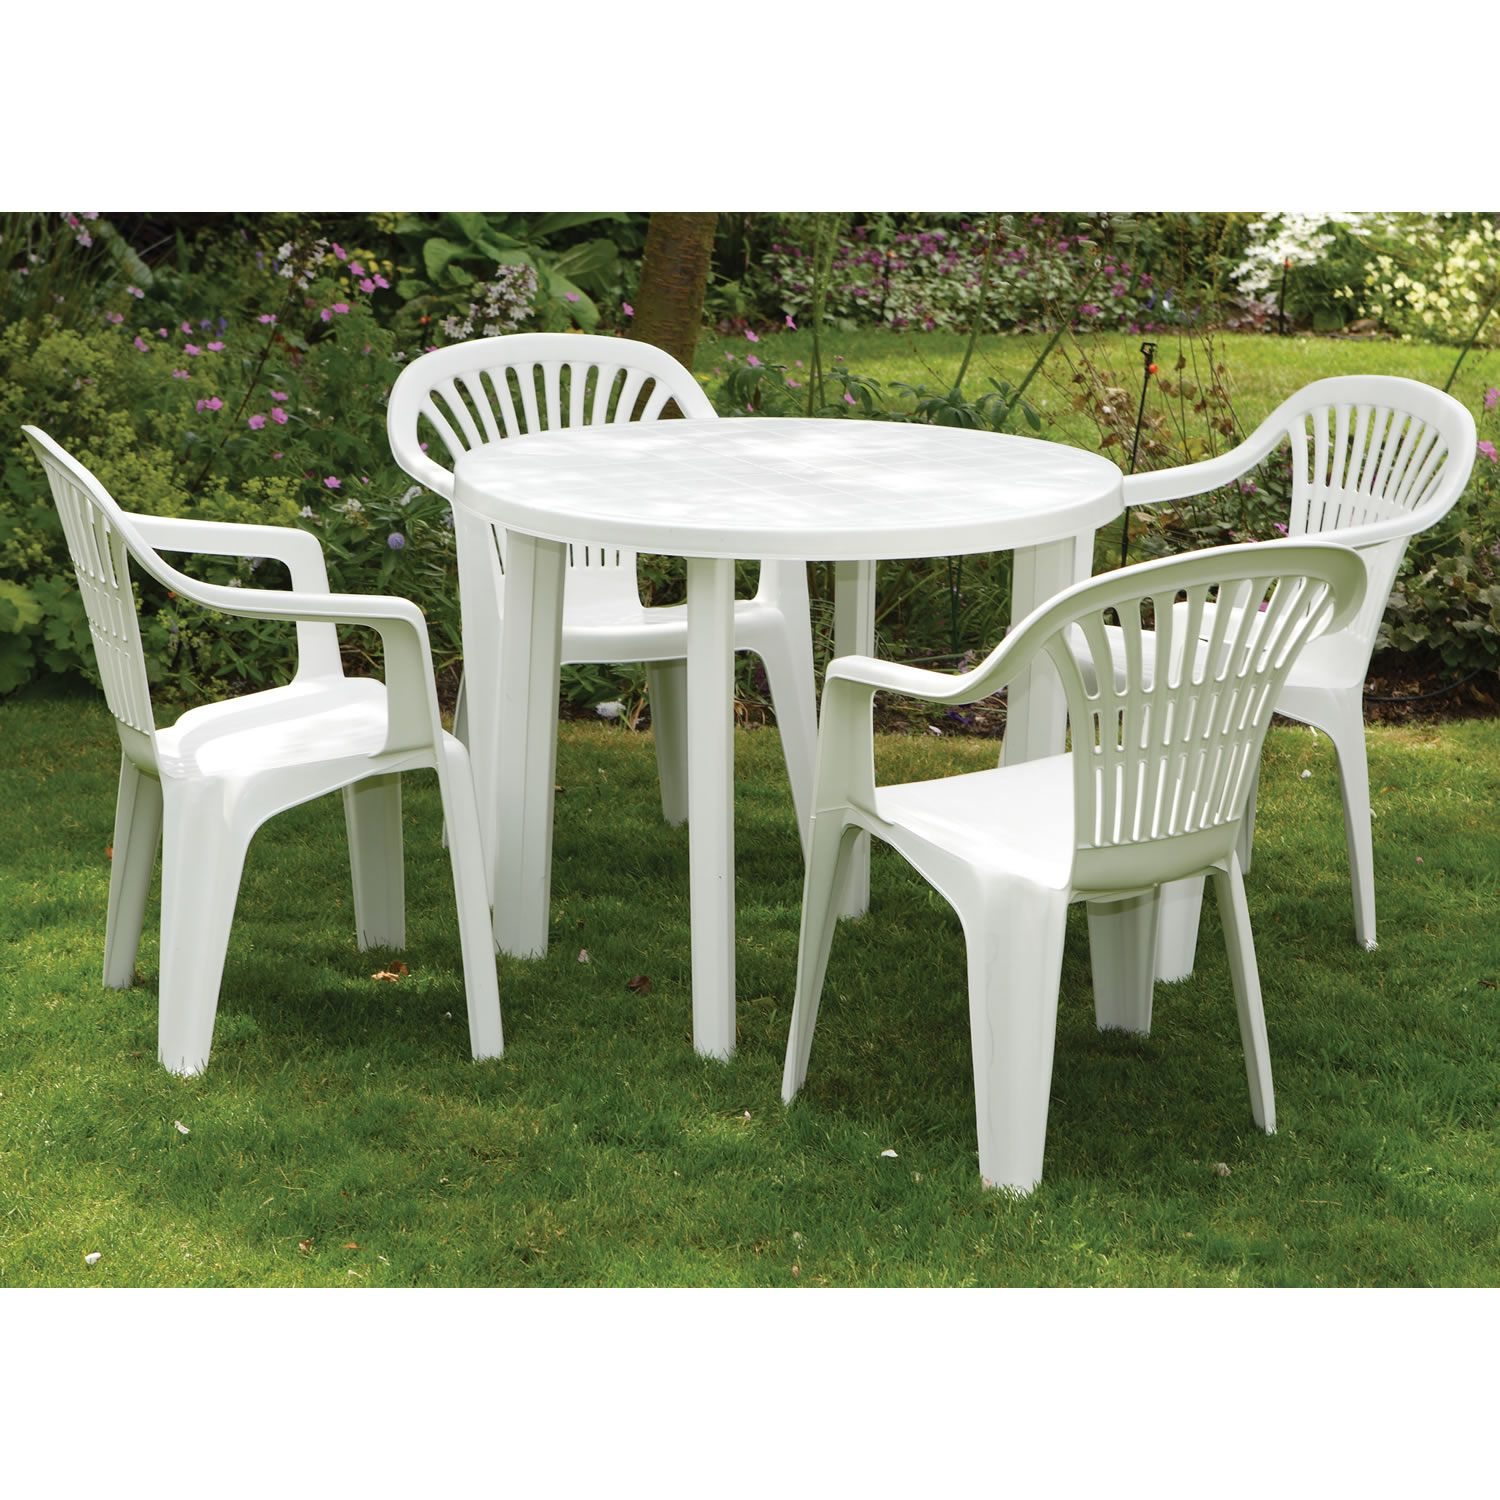 Plastic Outdoor Table And Chairs